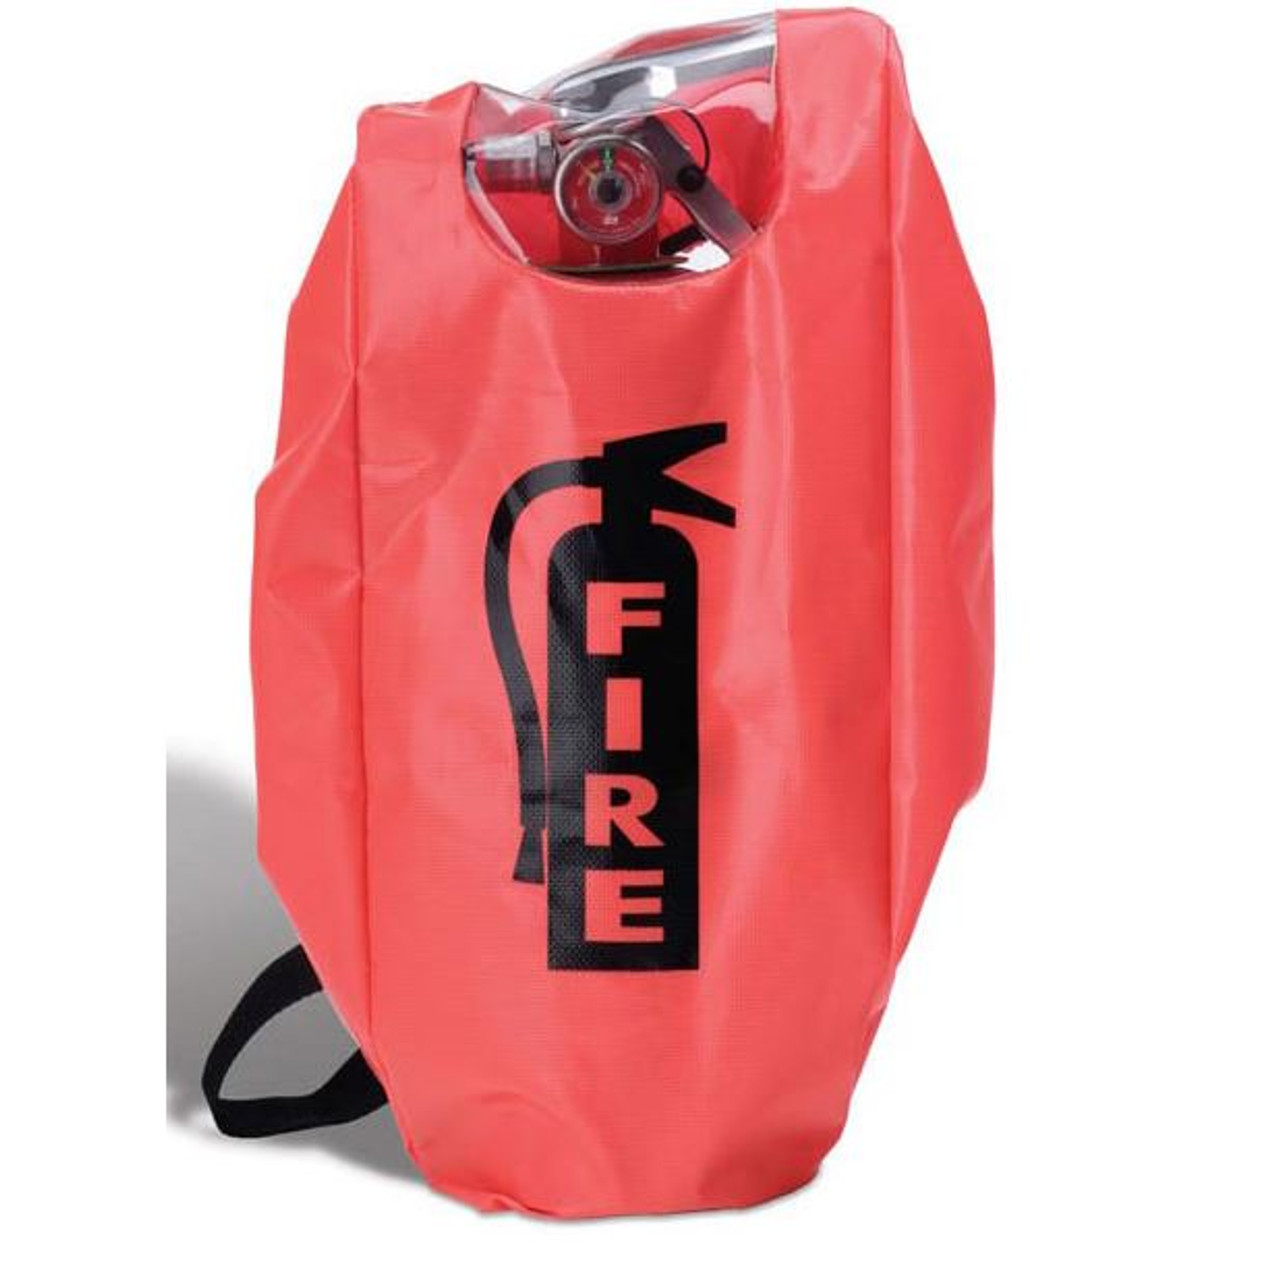 FEC4EW - Extra Small Fire Extinguisher Cover w/ Elastic & Window